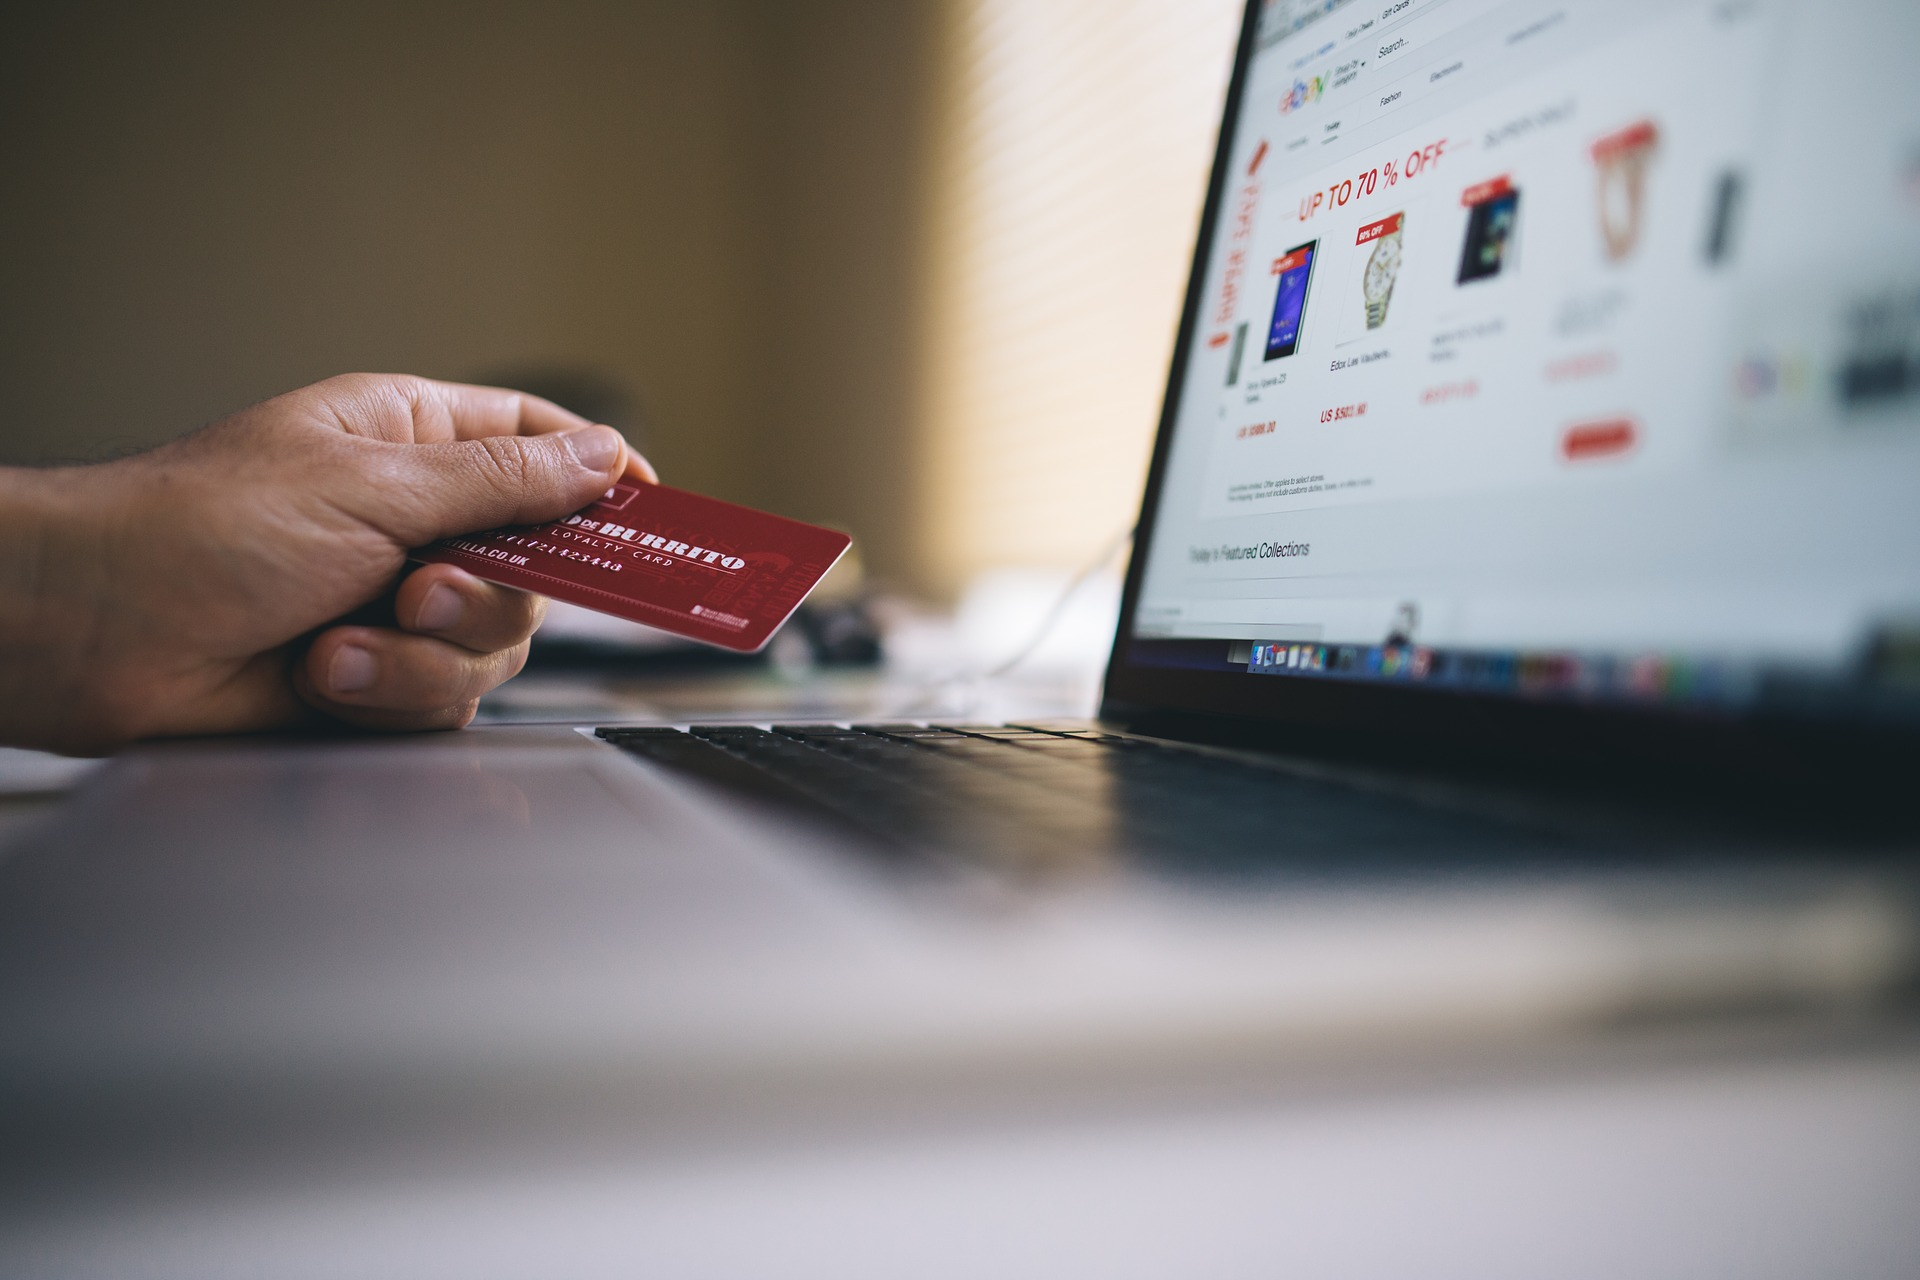 Is WordPress the Best Option for eCommerce in 2020?